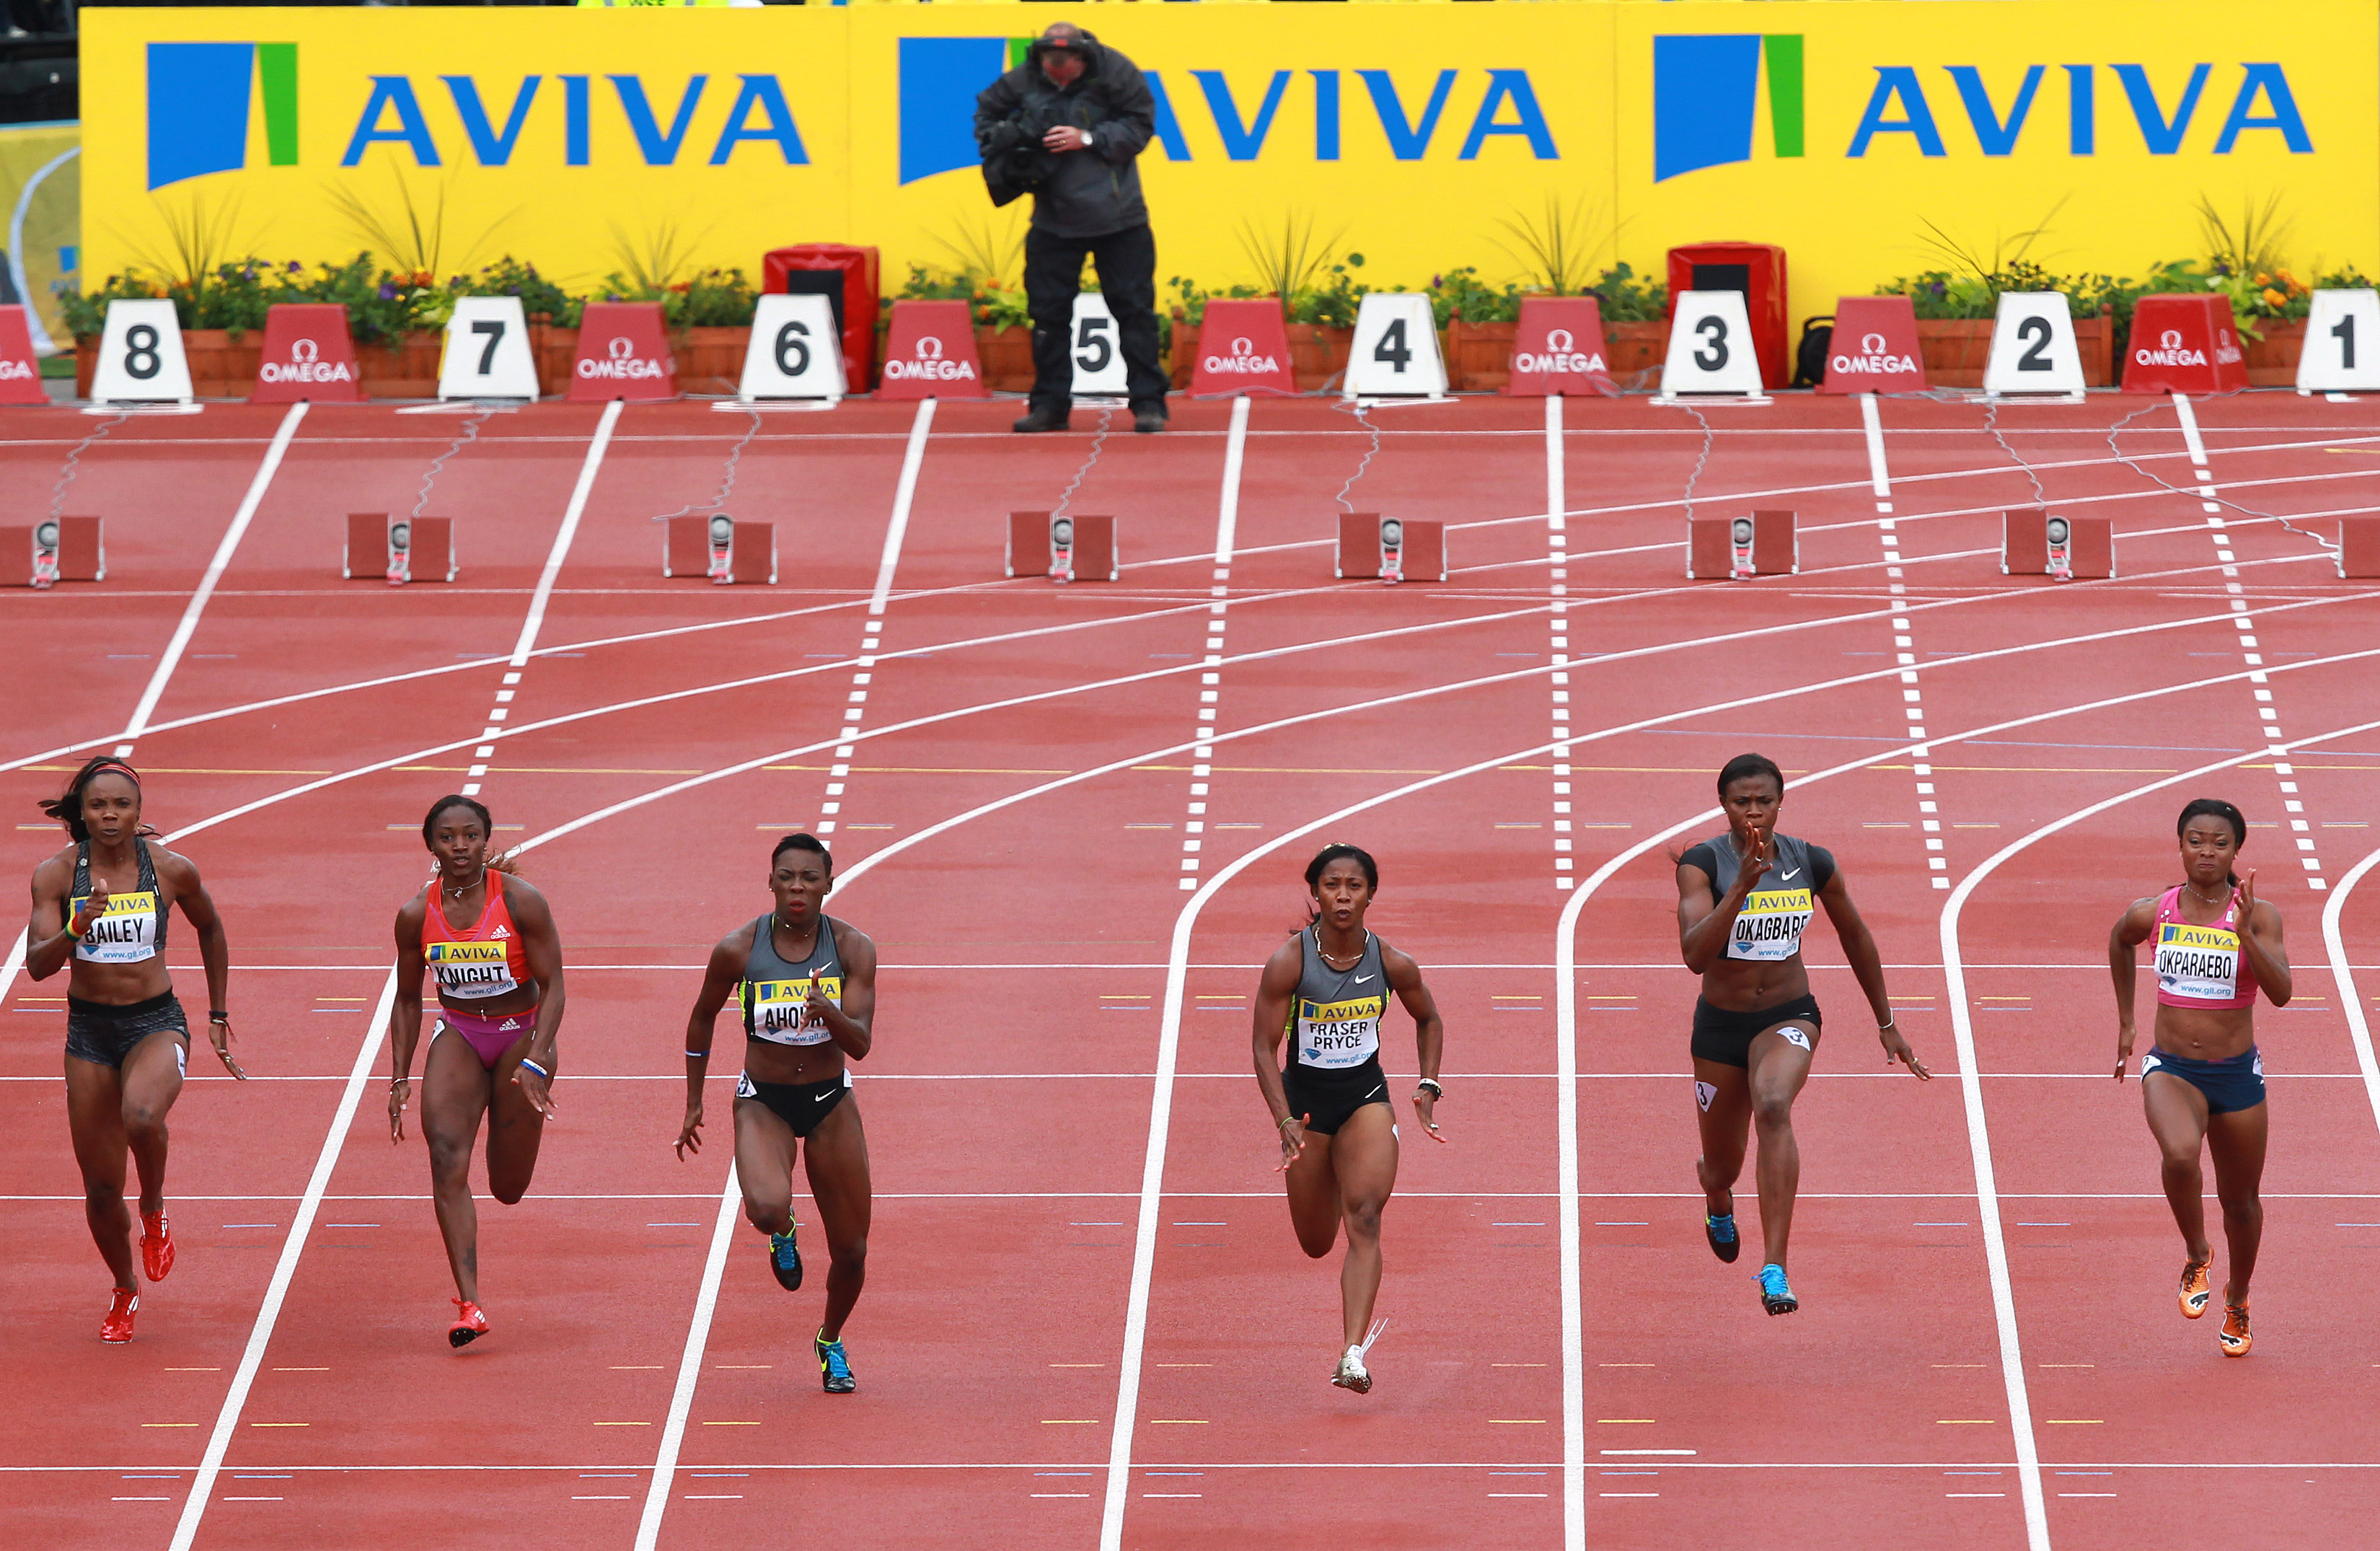 Shelley-Ann Fraser-Pryce of Jamaica wins her 100m heat during day two of the Aviva London Grand Prix at Crystal Palace on July 14, 2012 in London, England.